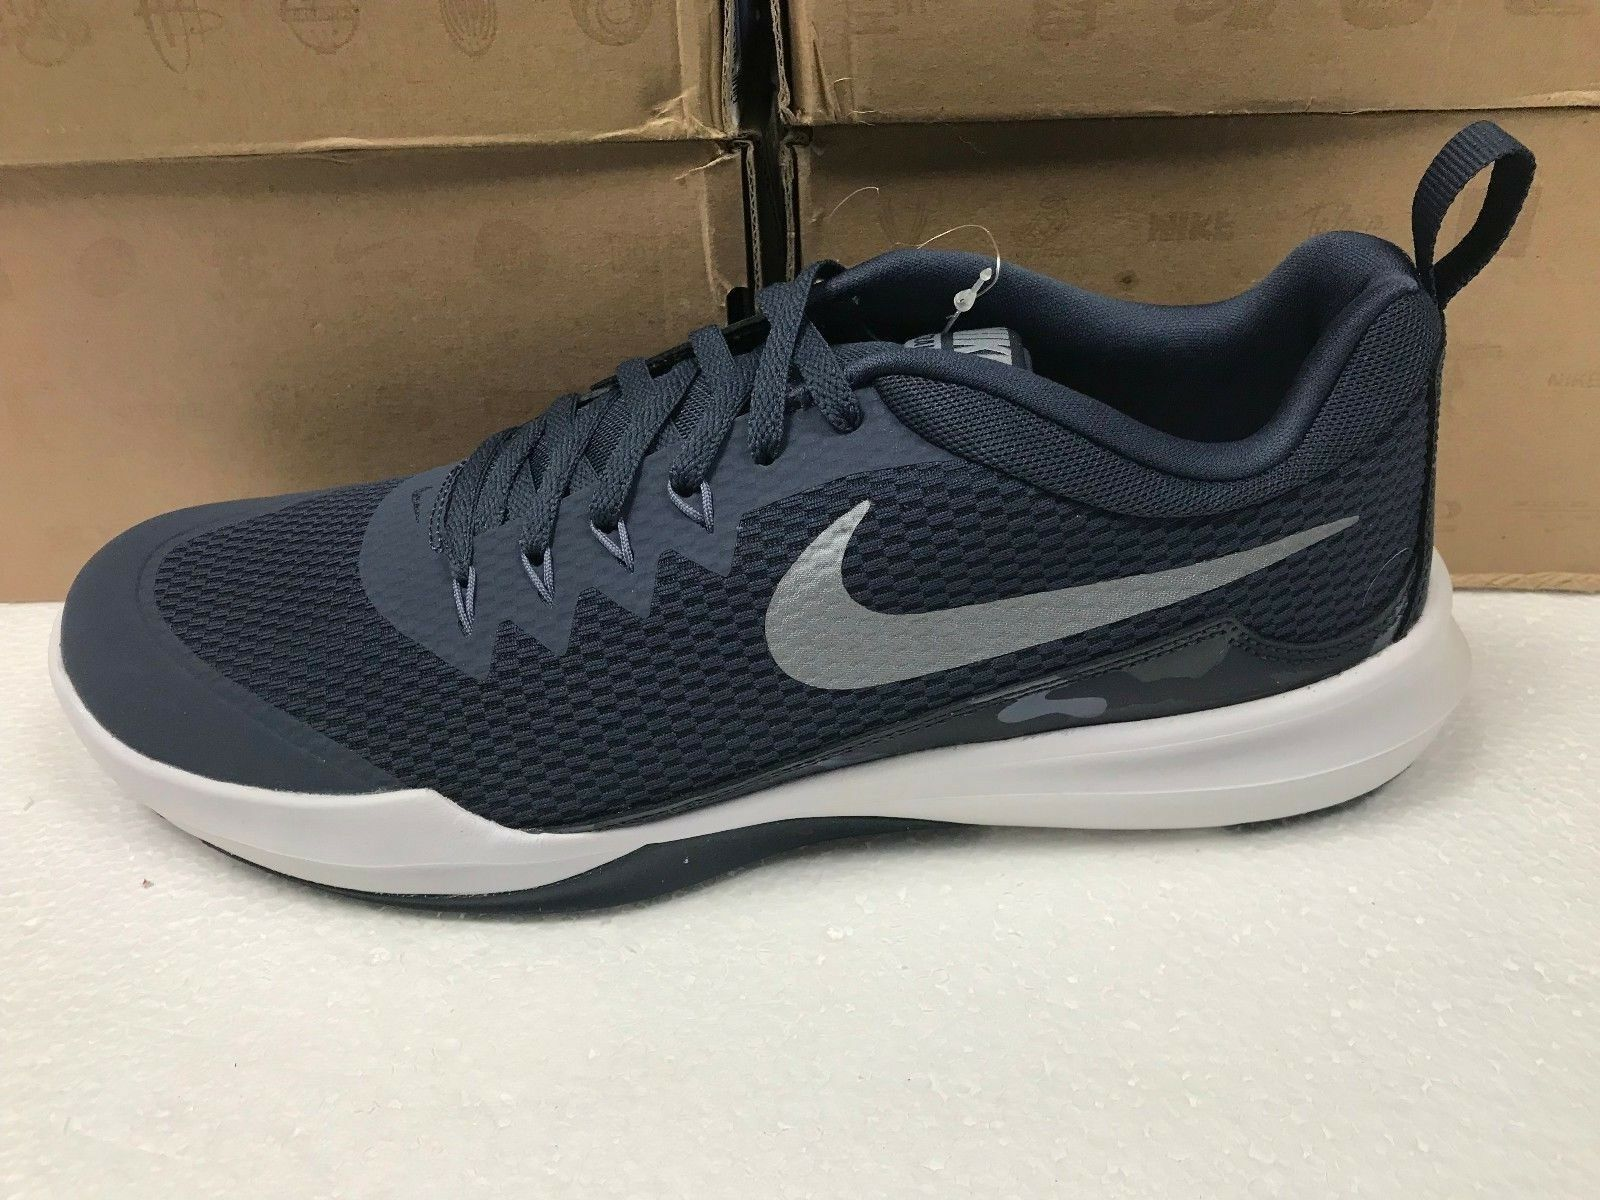 NEW MENS NIKE LEGEND TRAINER SNEAKERS 924206 401-SHOES-SIZE 10